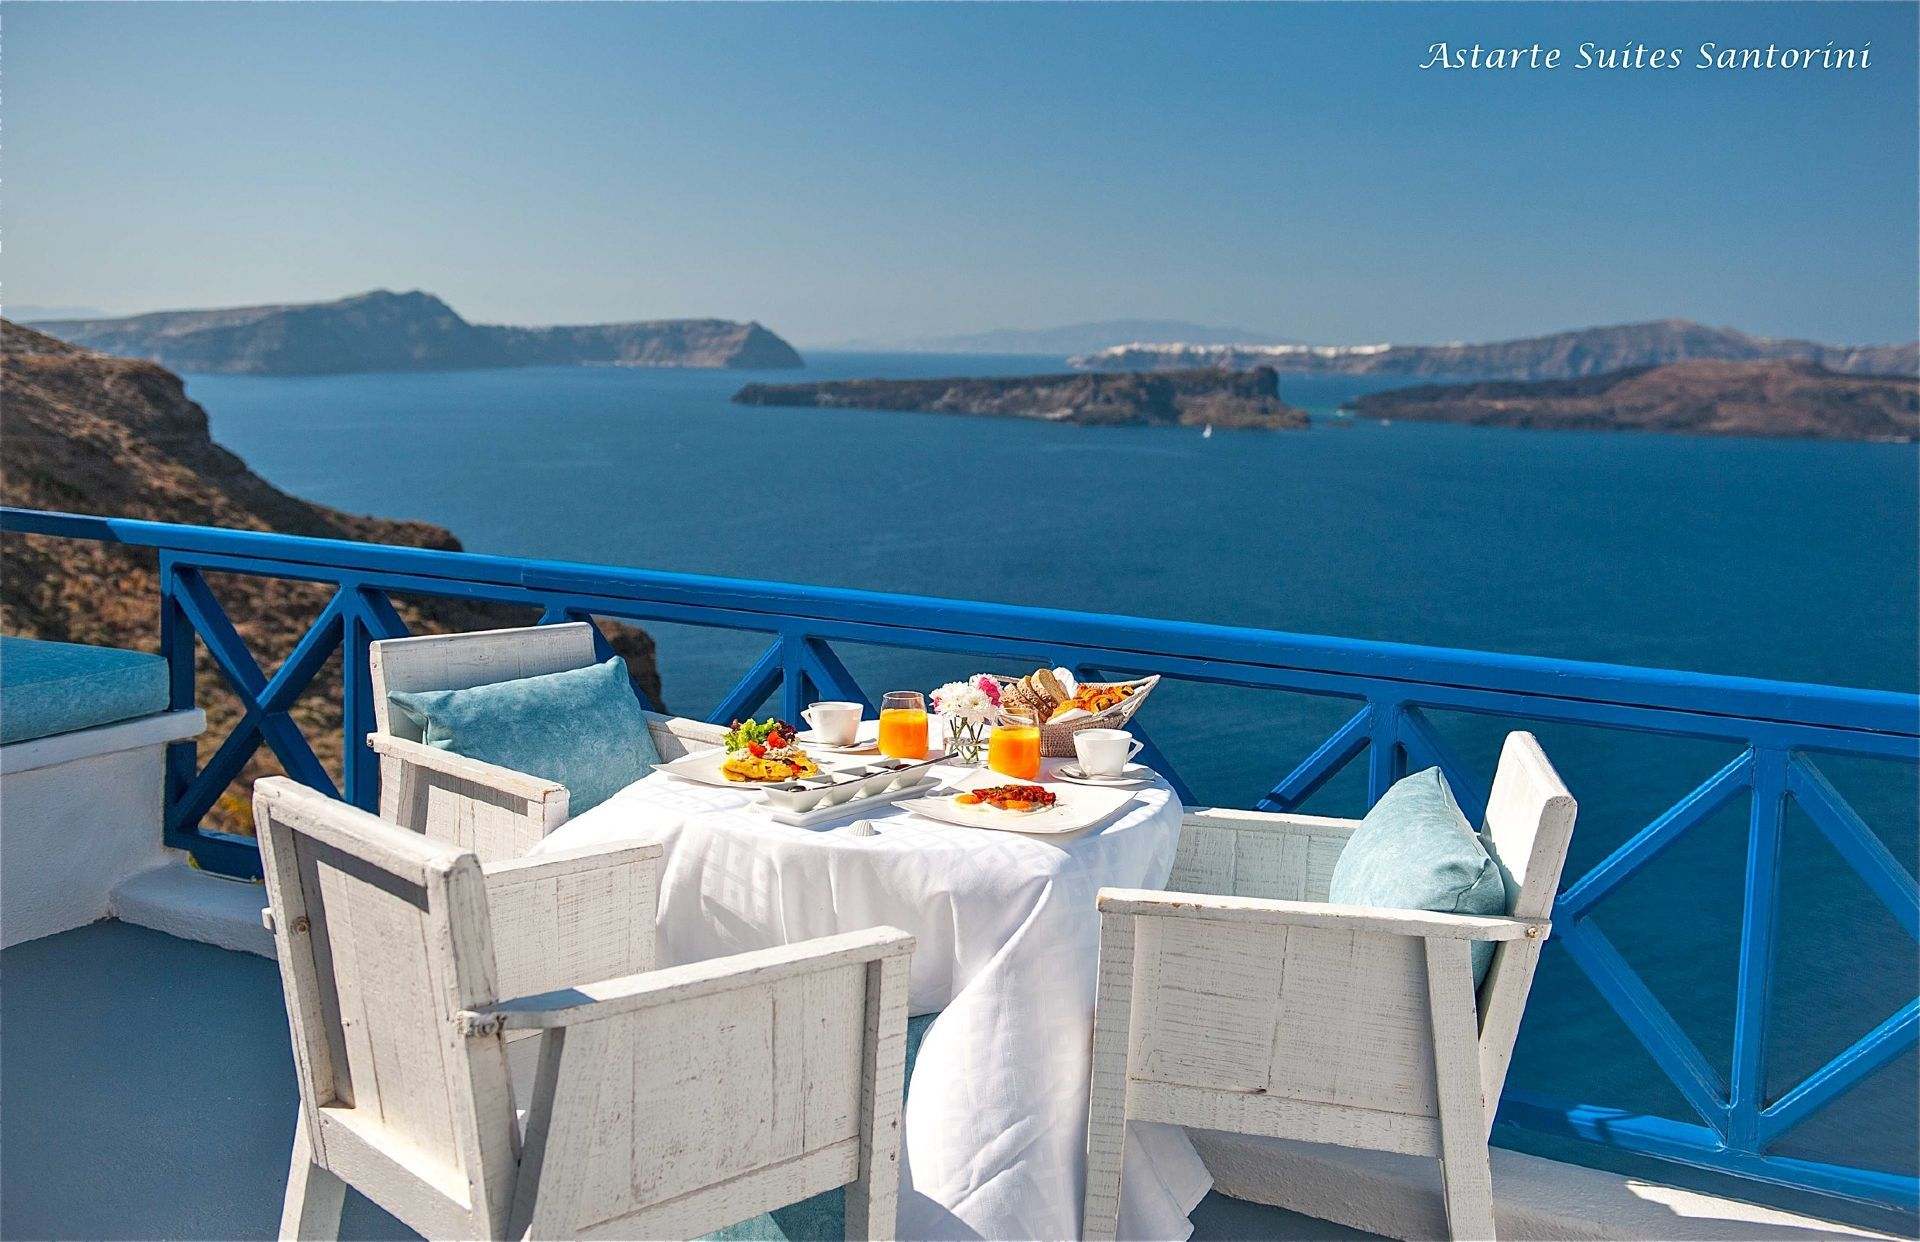 Astarte_Luxury_Suites_in_Santorini_island_Greece